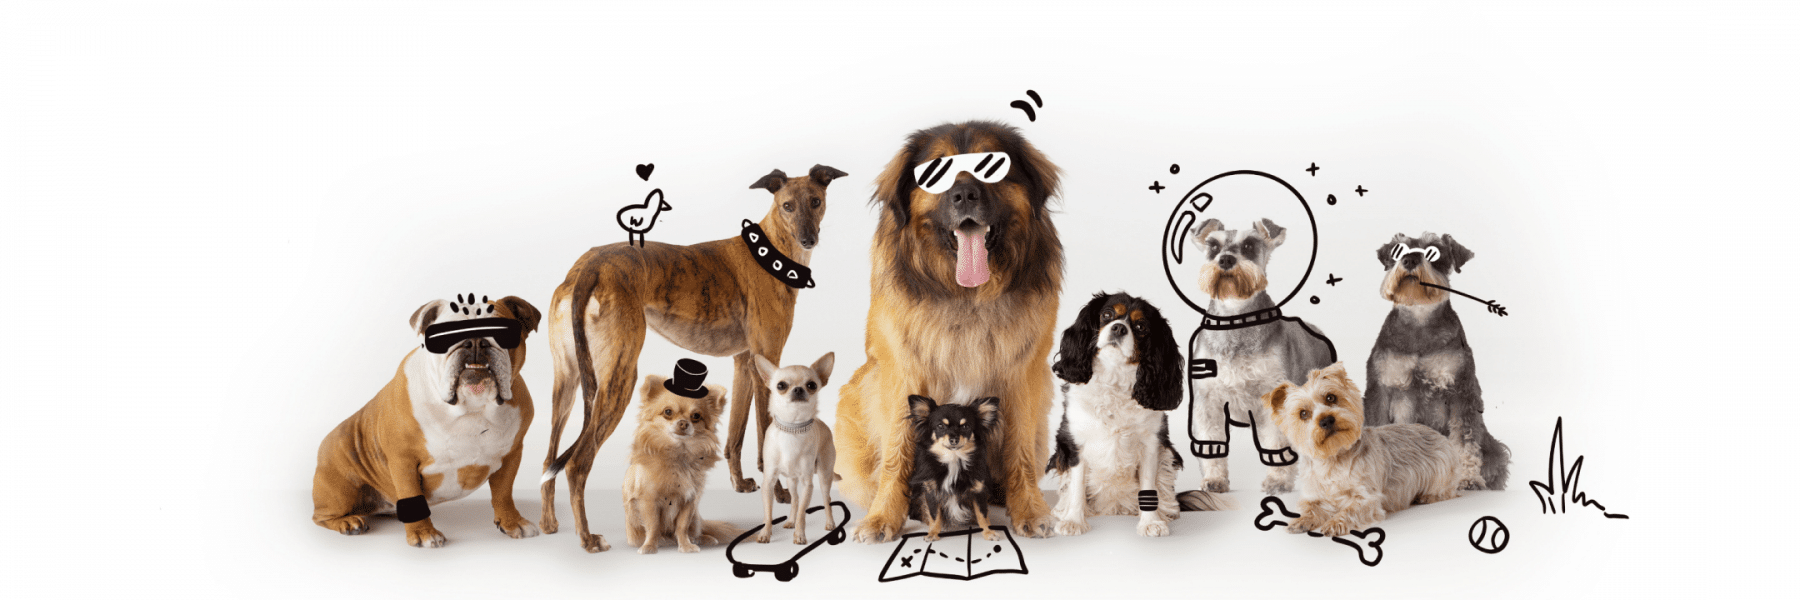 10 Common Dog Breed Misconceptions